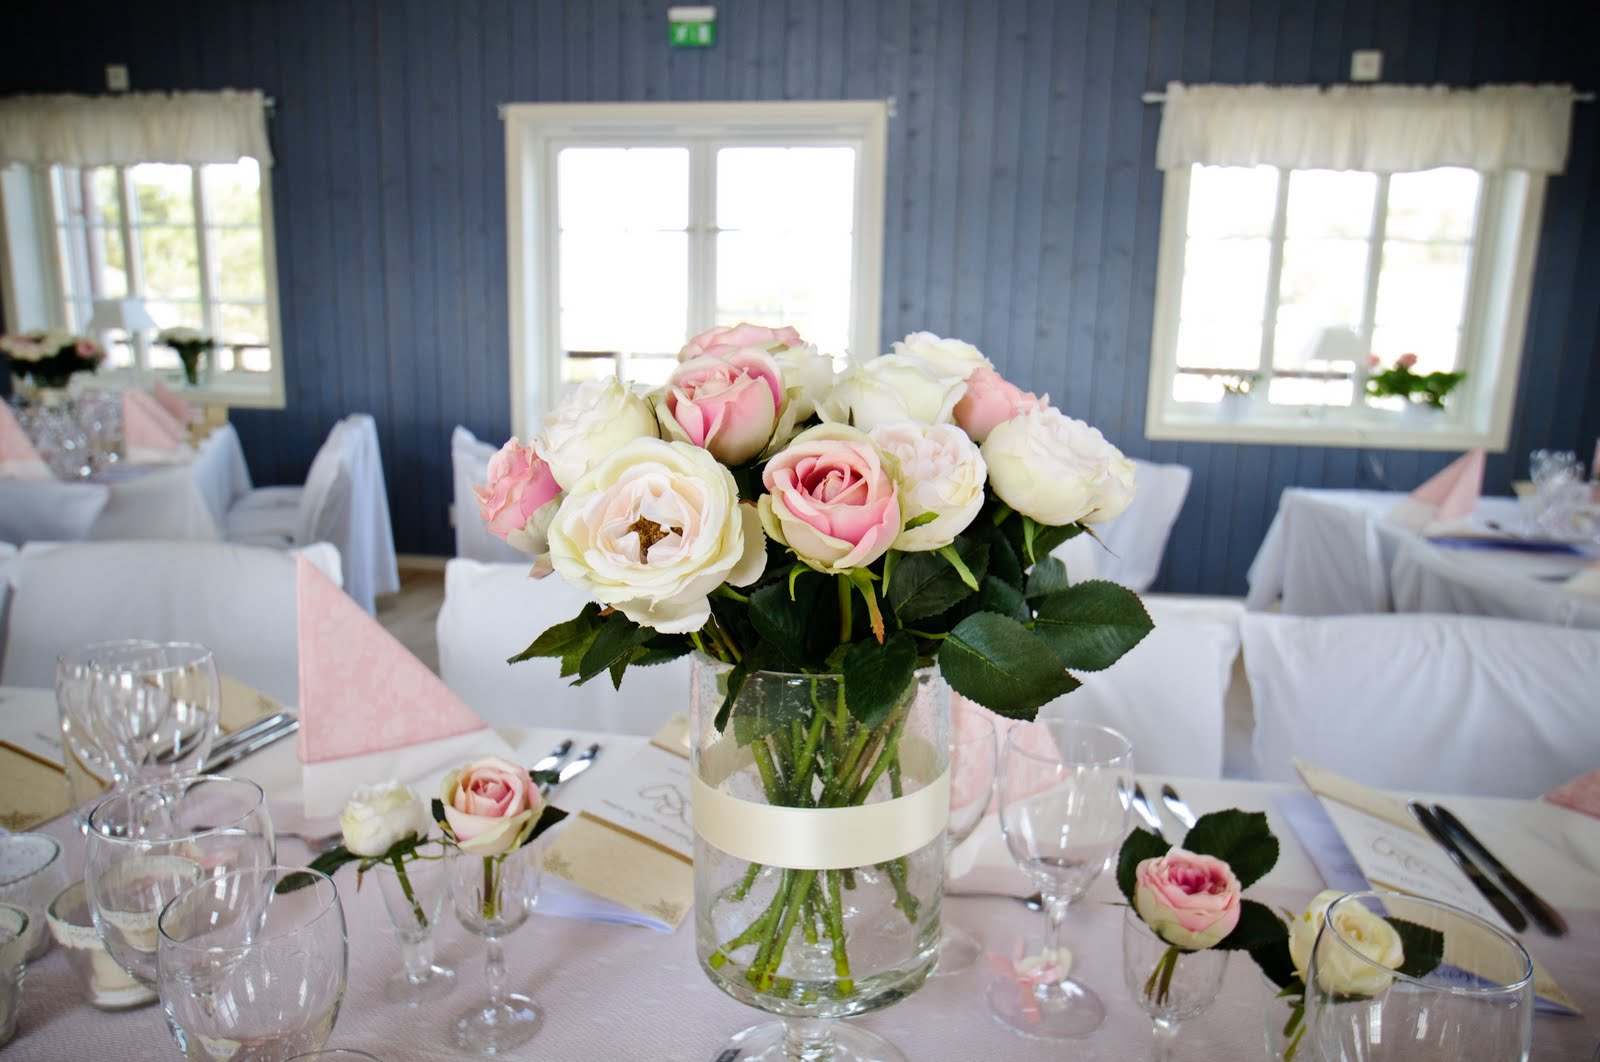 Br llopsdekoration tips och inspiration rosa dukning for Rosa dekoration